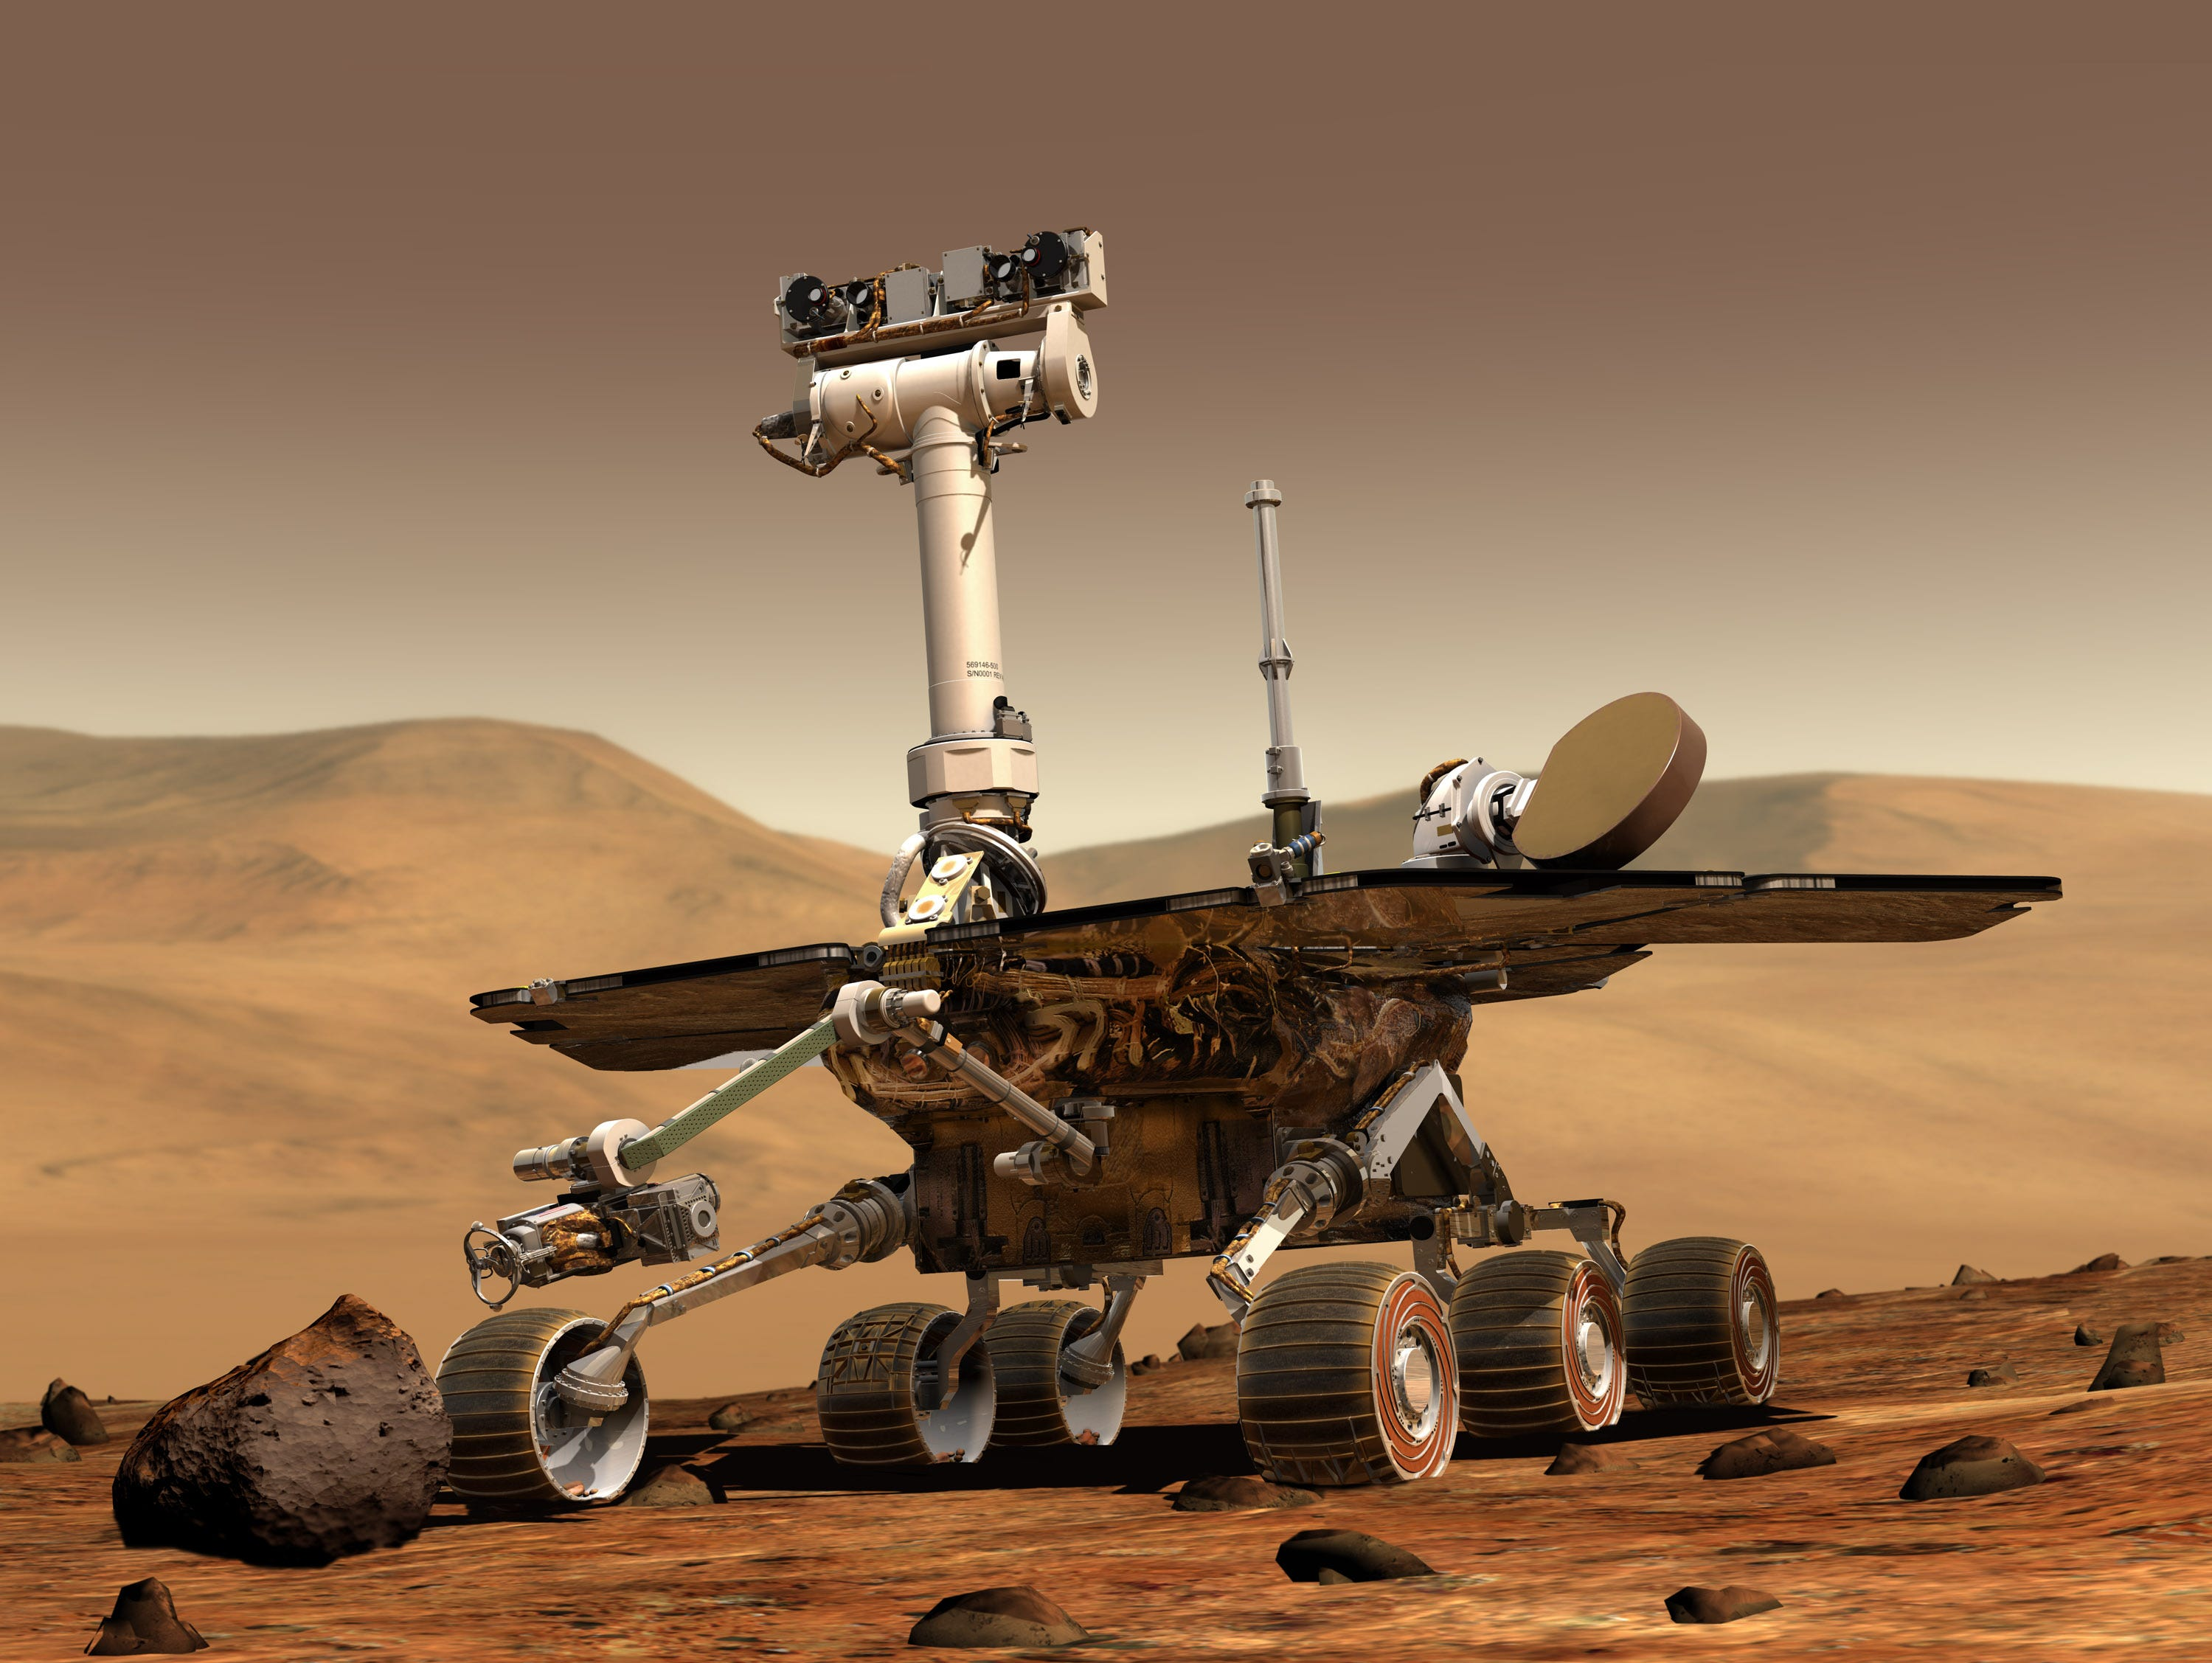 An artist's illustration of a NASA Mars Exploration Rover on the surface of Mars. Two unmanned rovers, Spirit and Opportunity, were launched in 2003 and arrived at sites on Mars in January 2004. They are each about the size of a golf car.  Each rover has a toolkit for functioning as a robotic geologist.